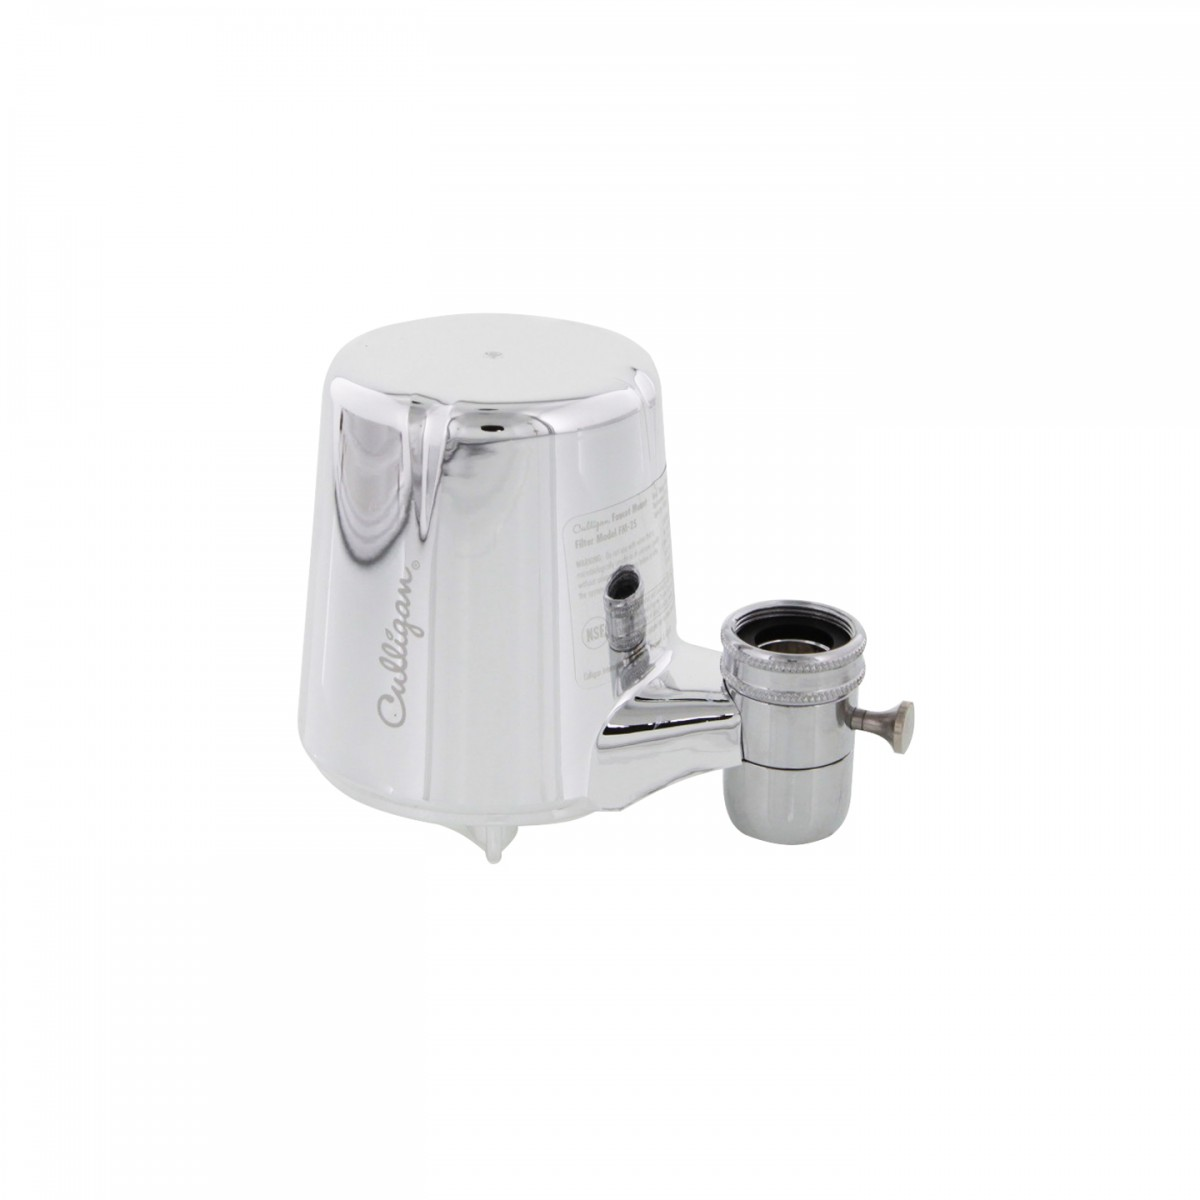 FM-25 Culligan Water Faucet Filter - DiscountFilterStore.com